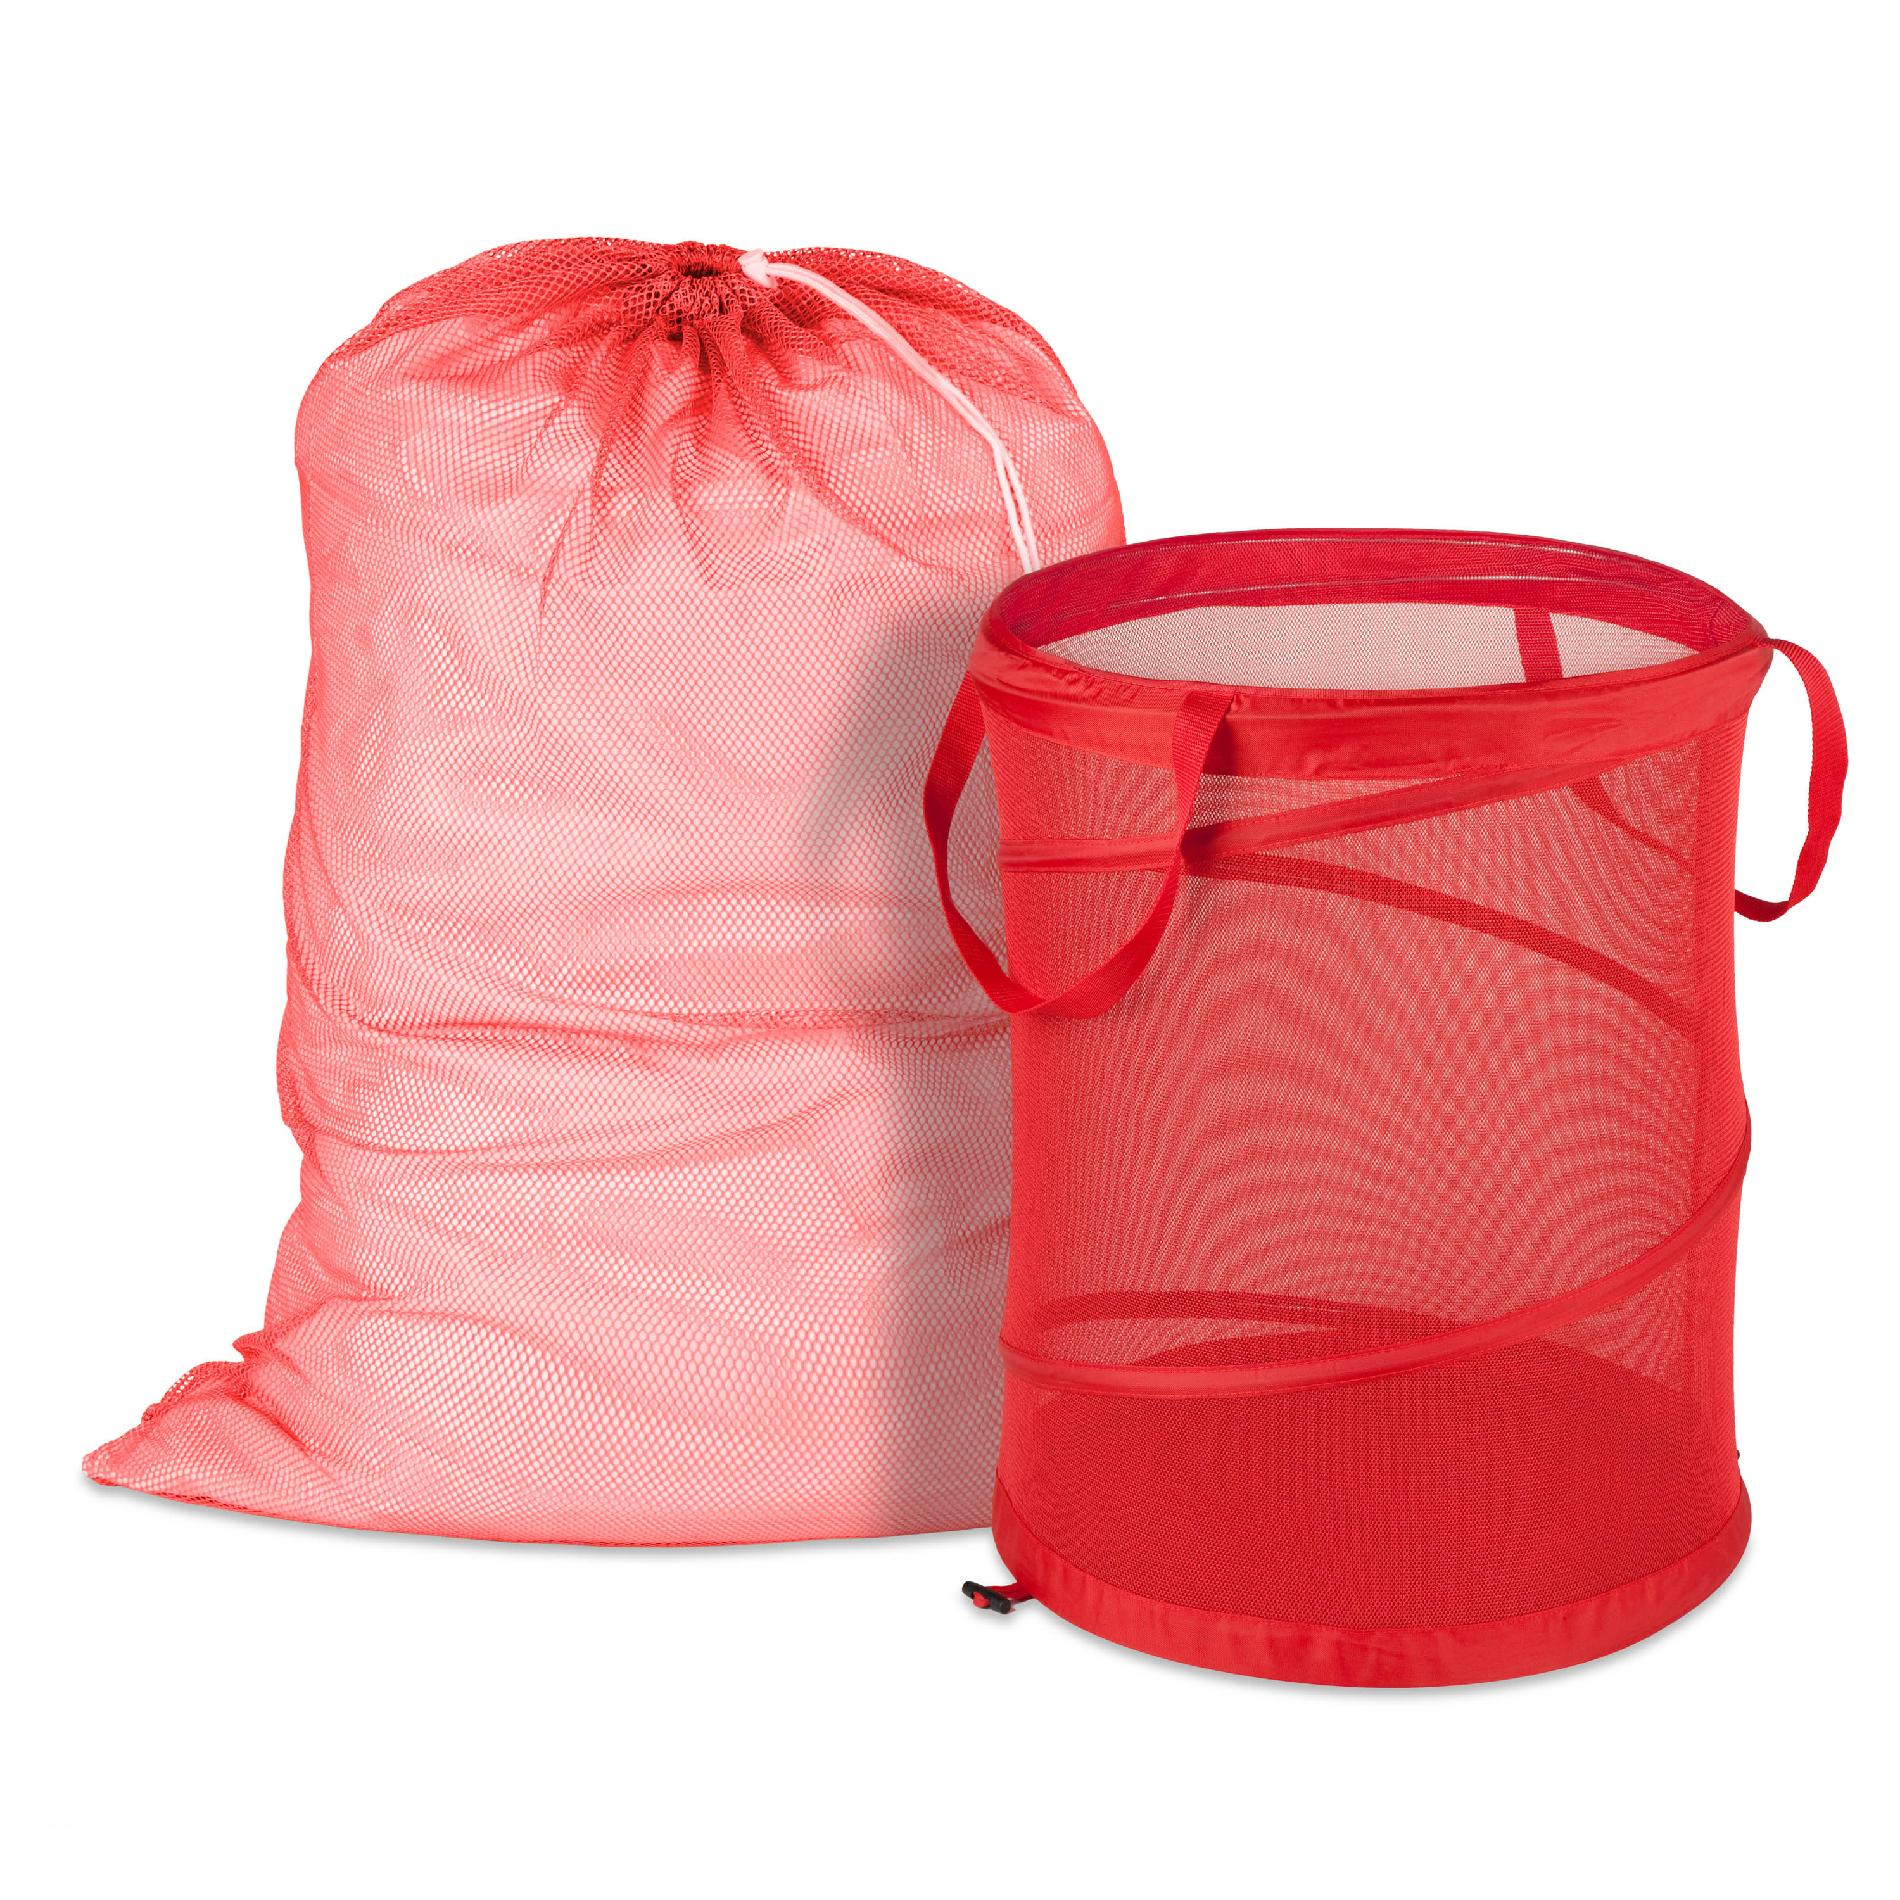 Carry Laundry Bag Honey Can Do Red Mesh Laundry Bag And Hamper Kit Home